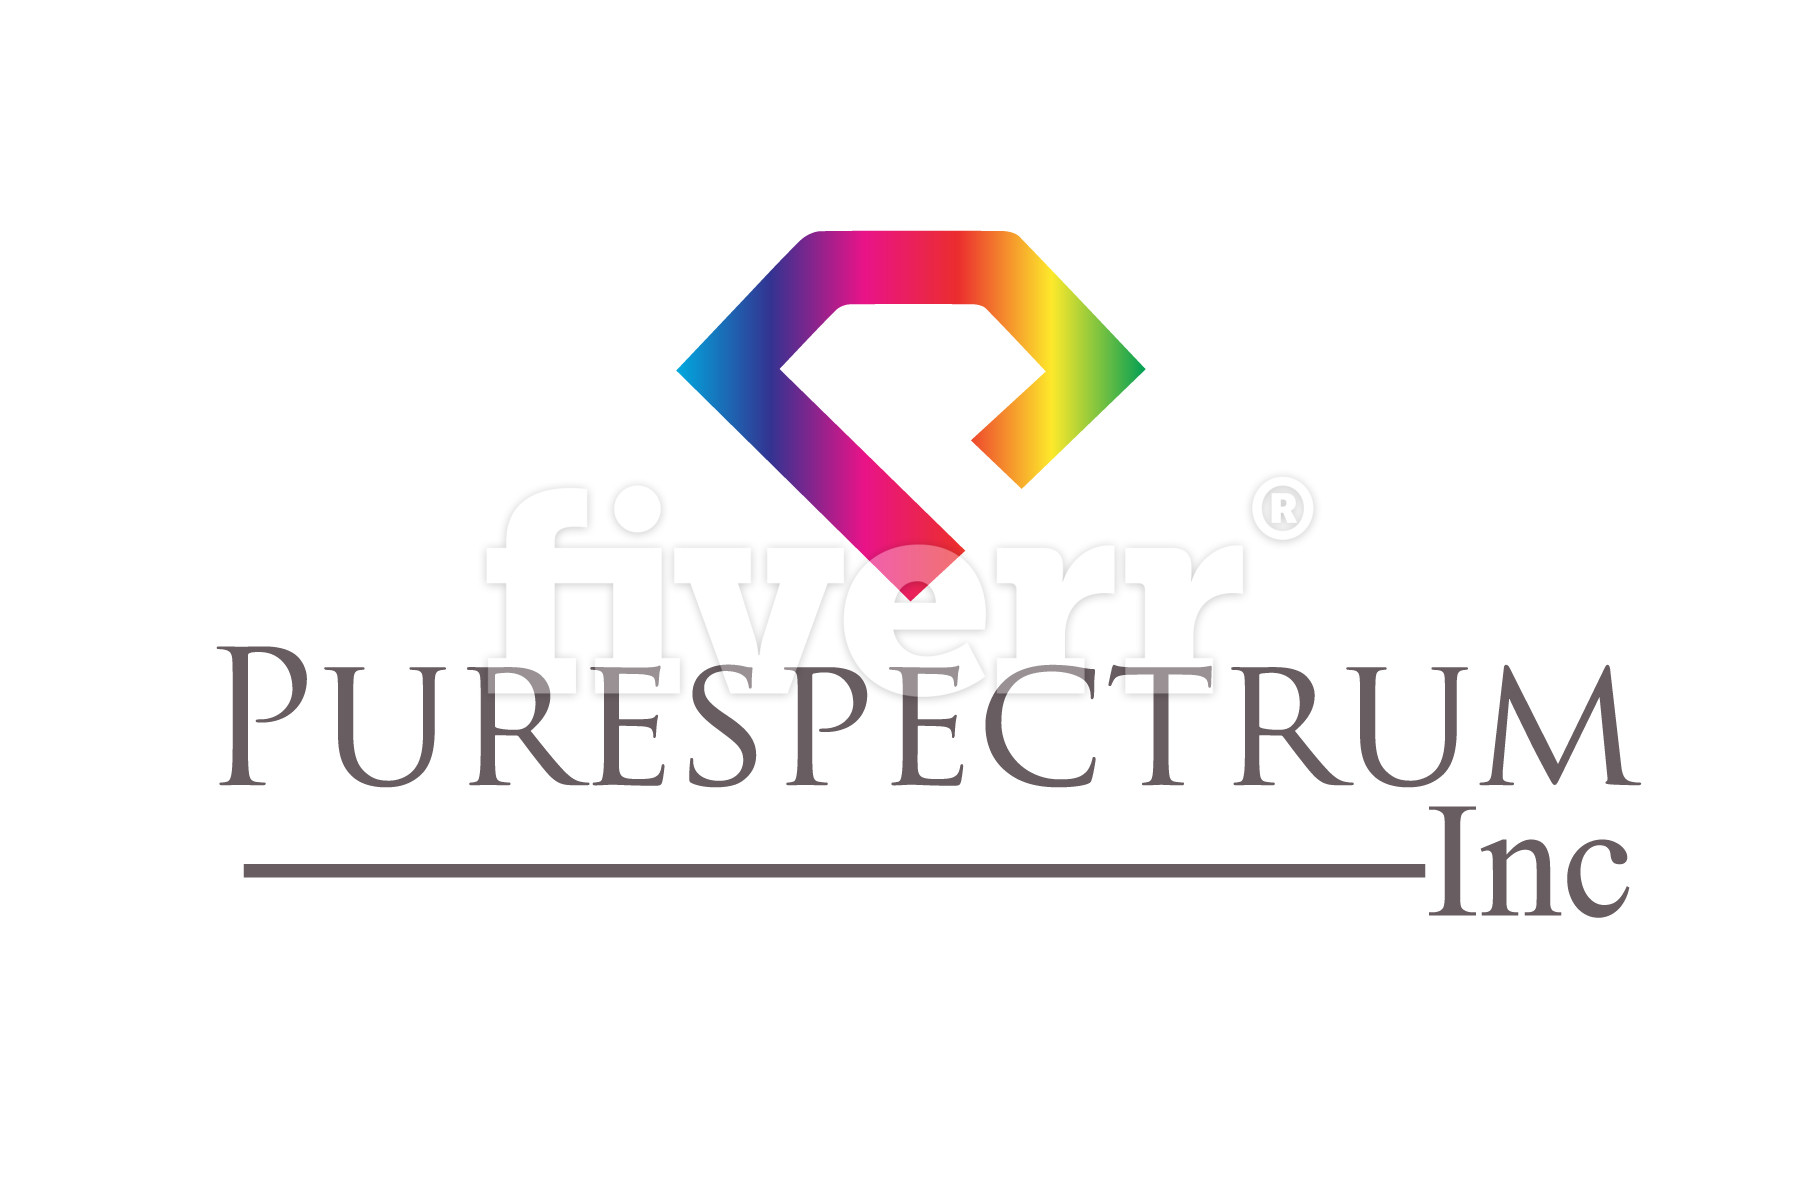 Purespectrum Inc. (PSRU:OTC) Comments on the Control Dispute Sign Posted on OTC Markets Group ...